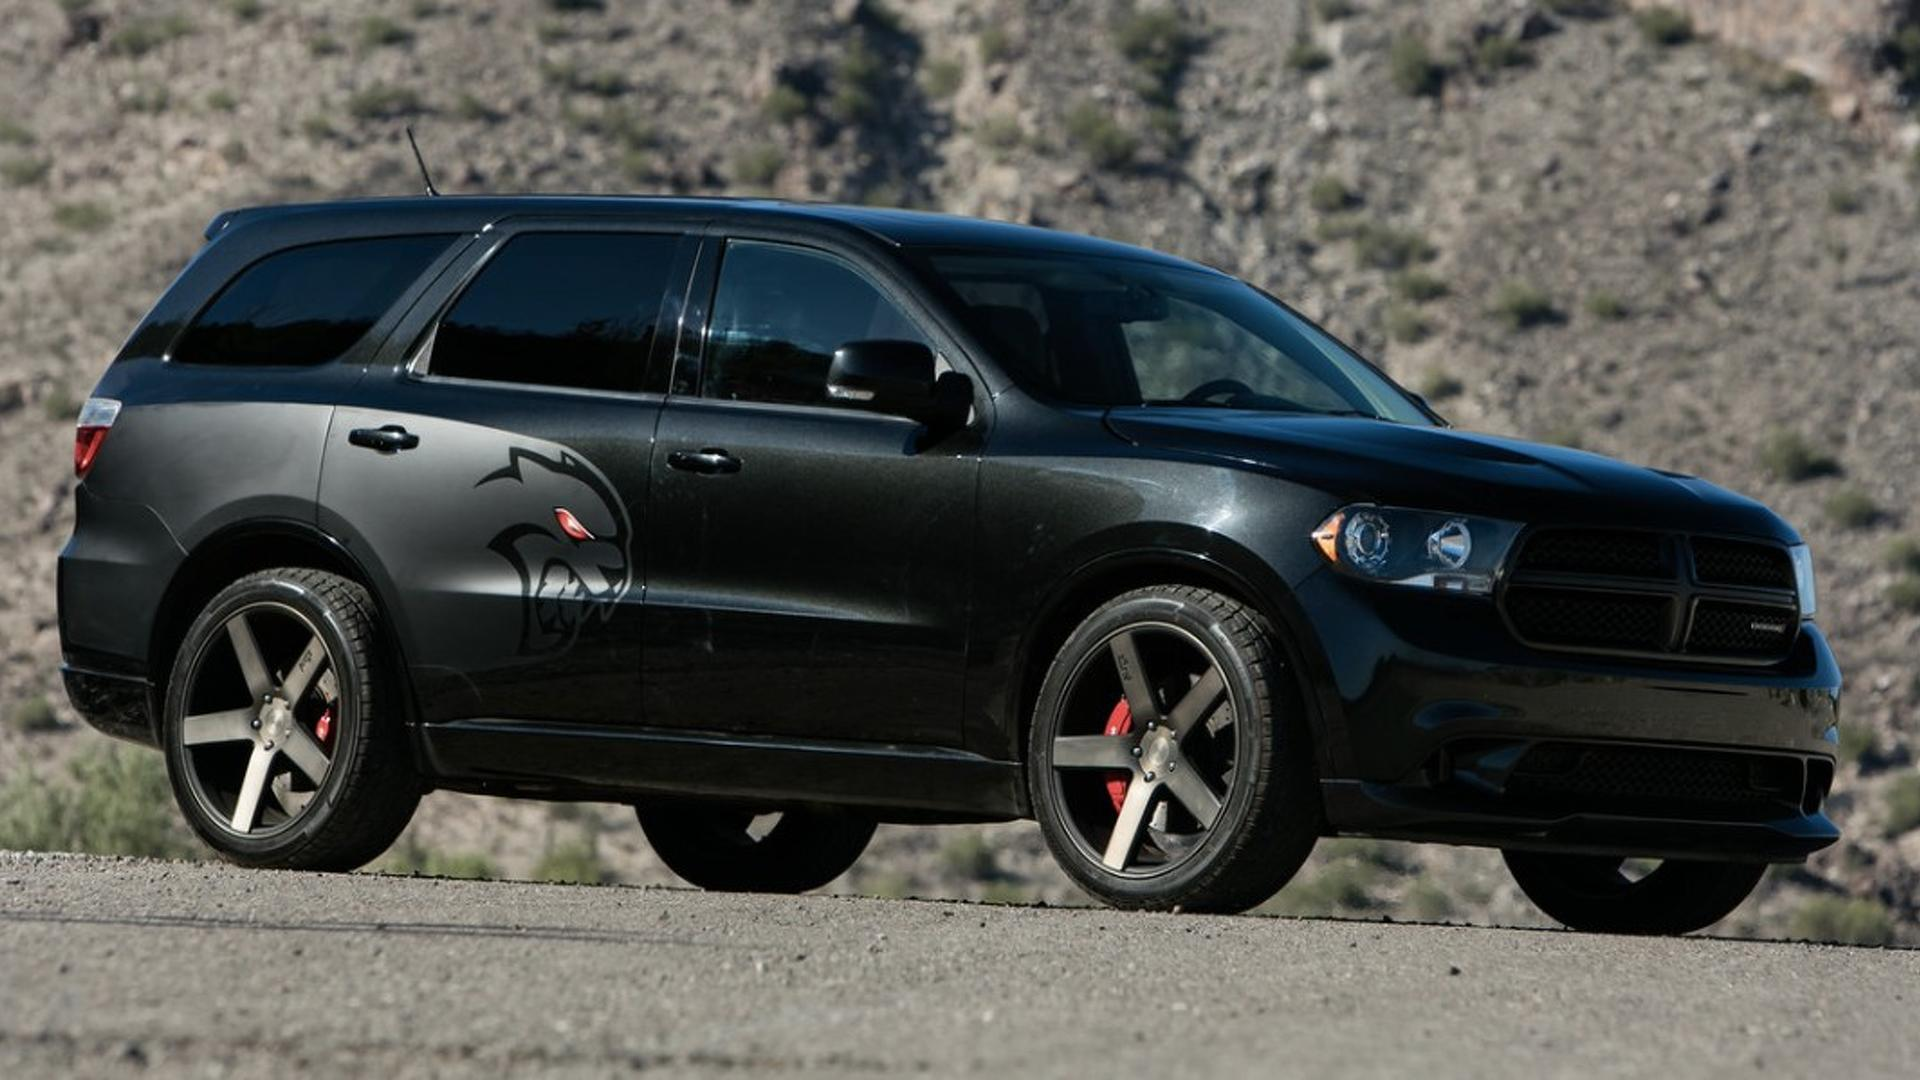 sxt review durango awd start watch youtube and dodge up tour